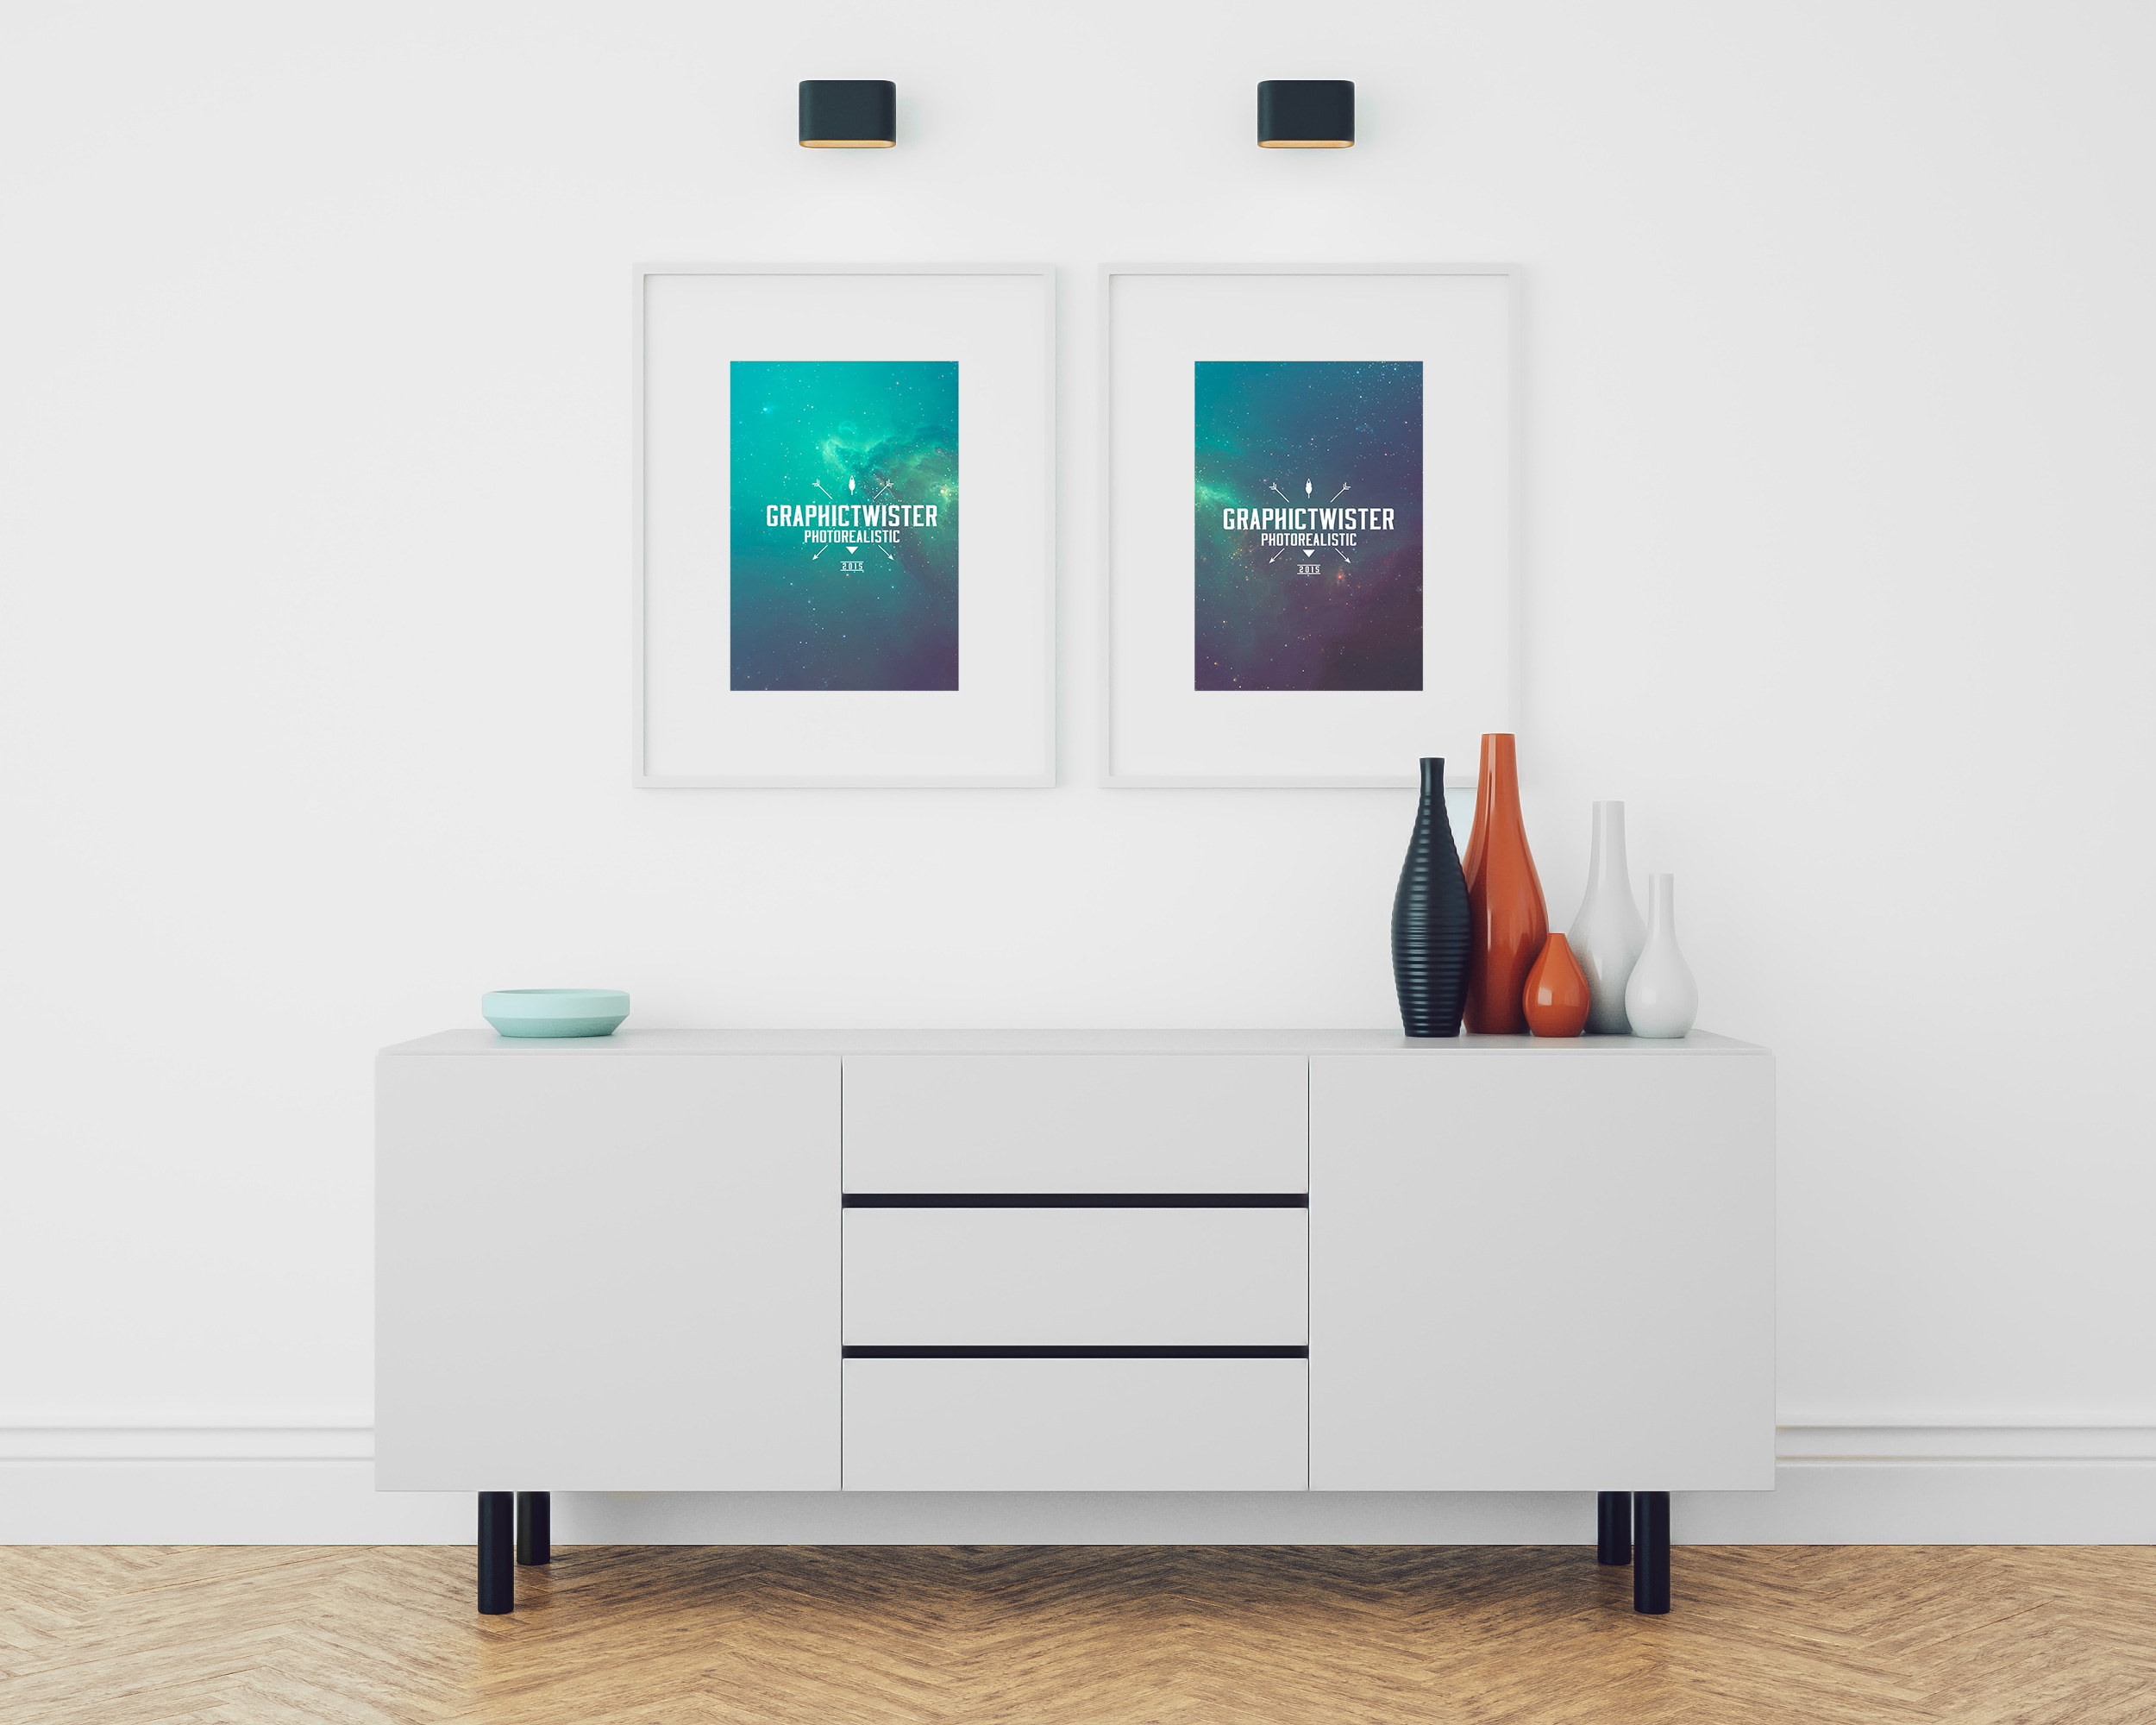 Double Image Frame Mockup | Premium and Free PSD Resources: https://graphictwister.com/double-image-frame-mockup